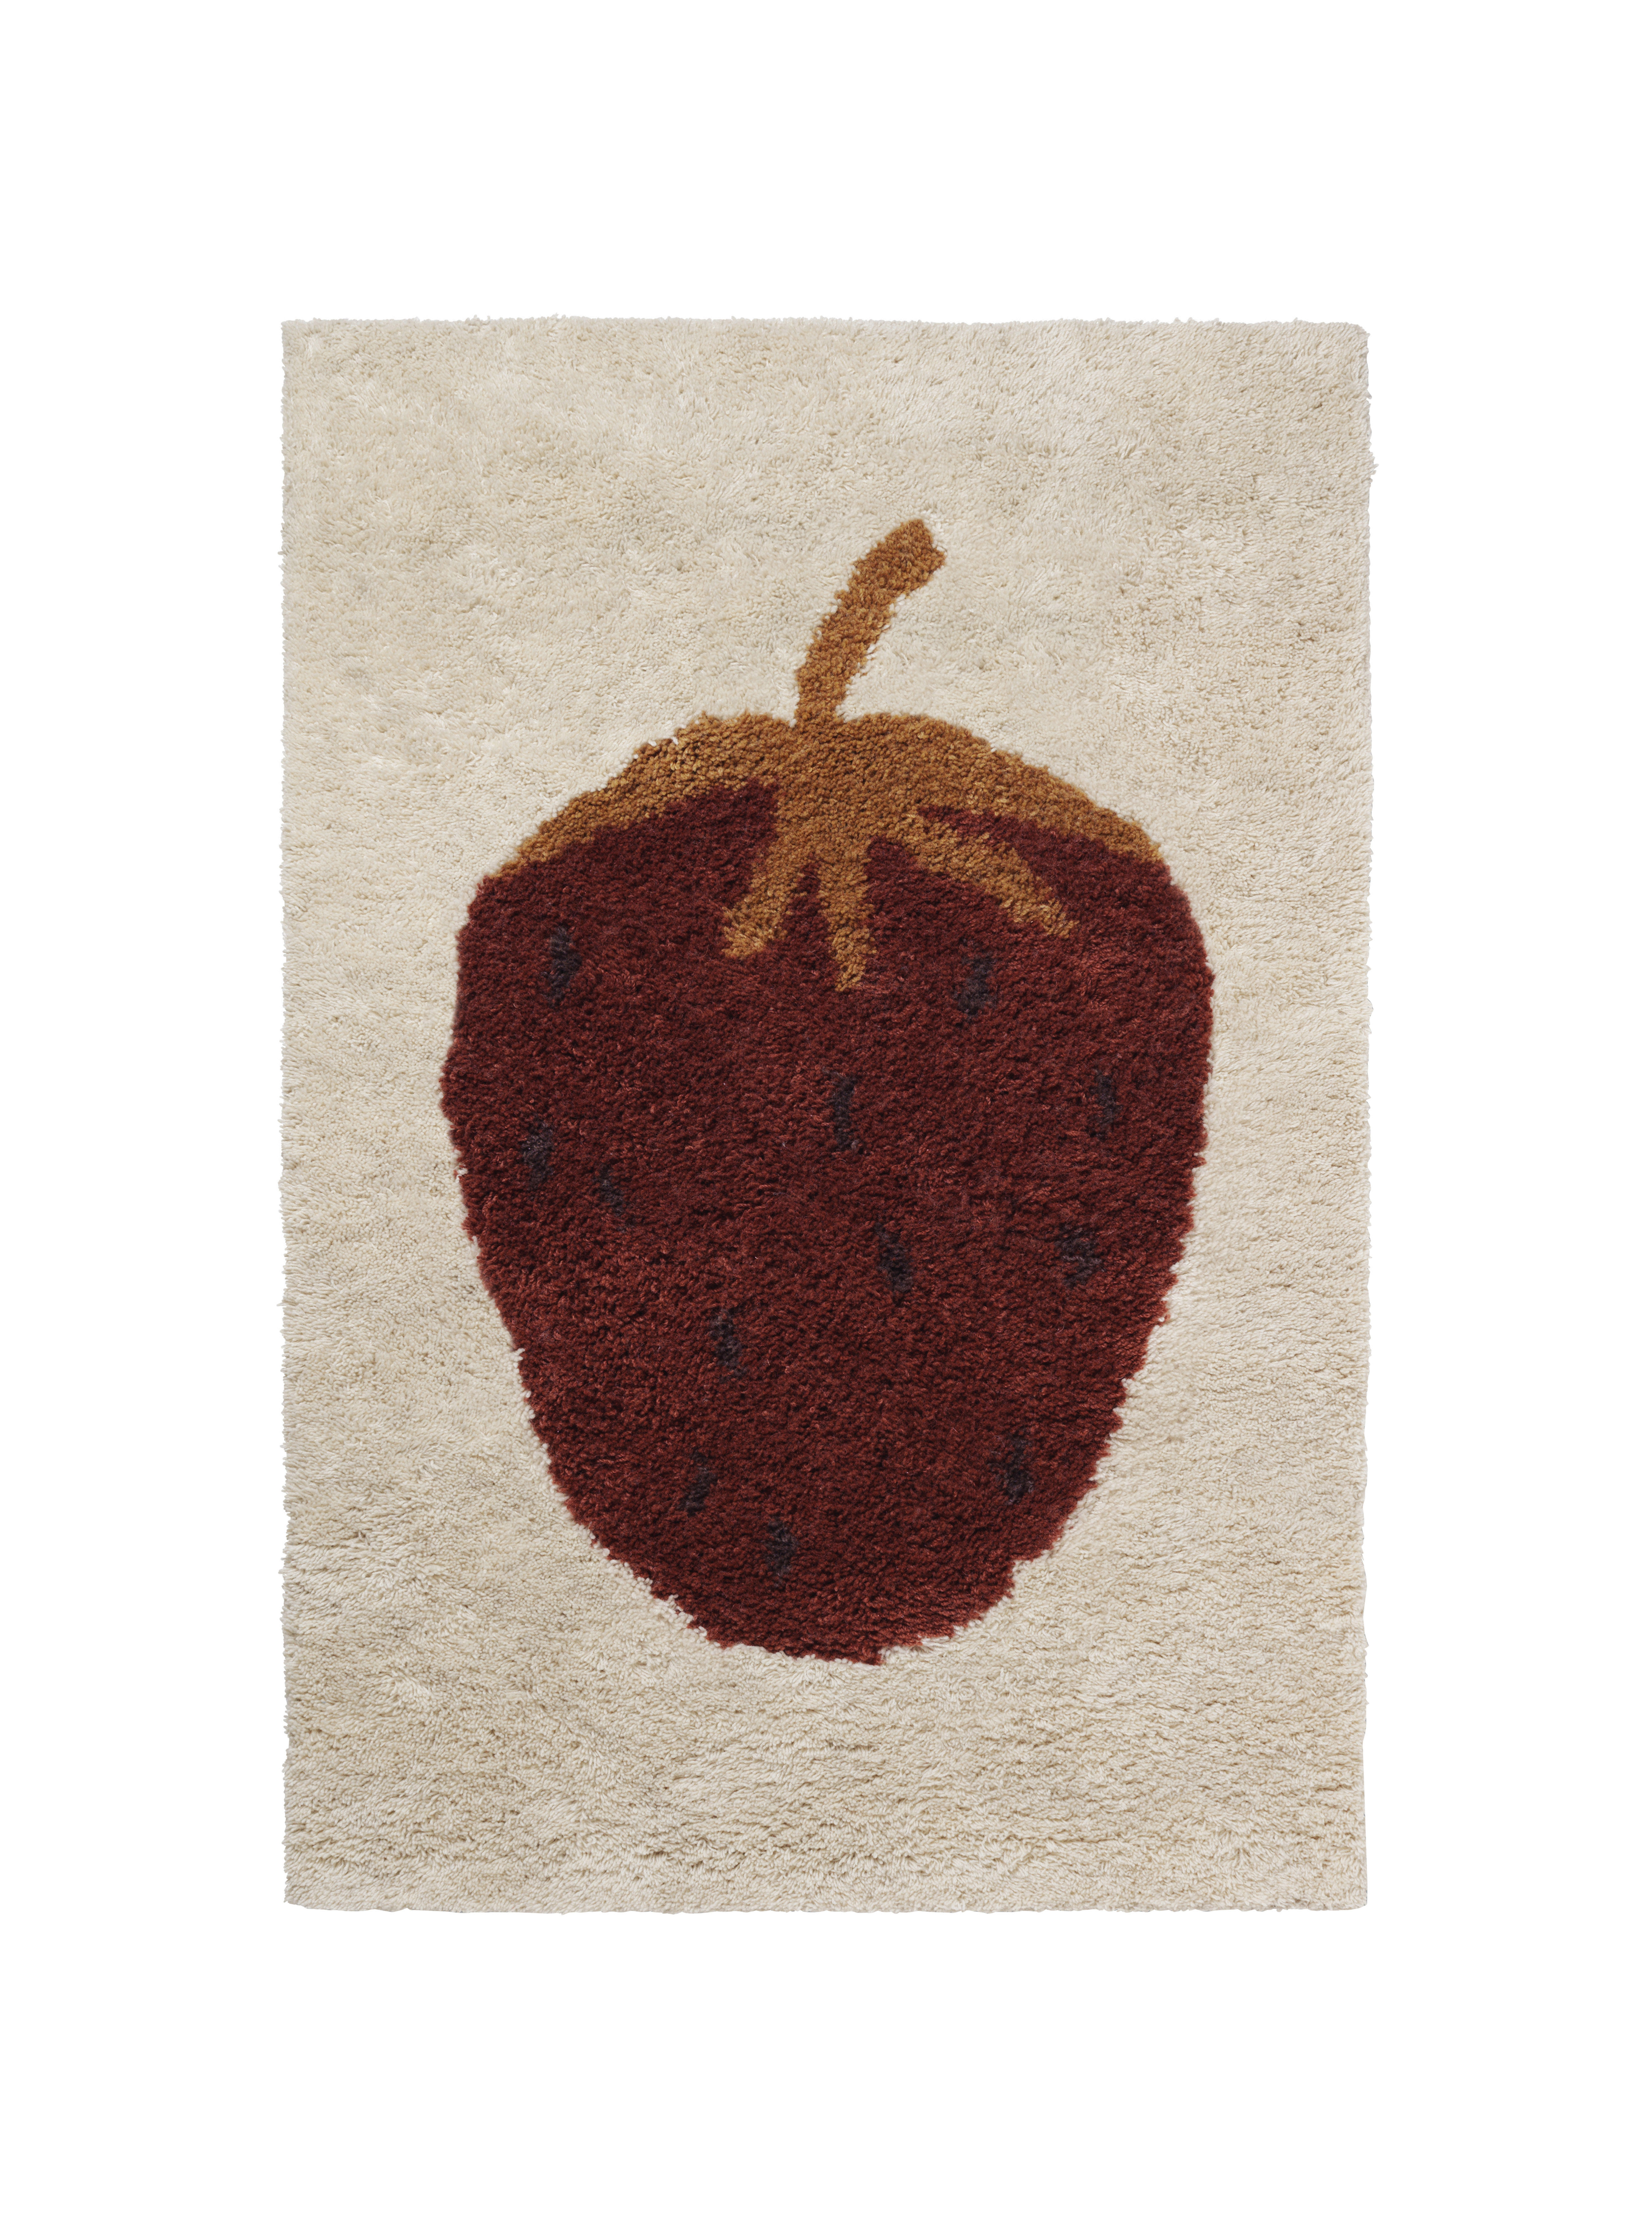 Furniture - Kids Furniture - Fruiticana - Fraise Rug - / Small - Handwoven by Ferm Living - Strawberry - Cotton, Wool